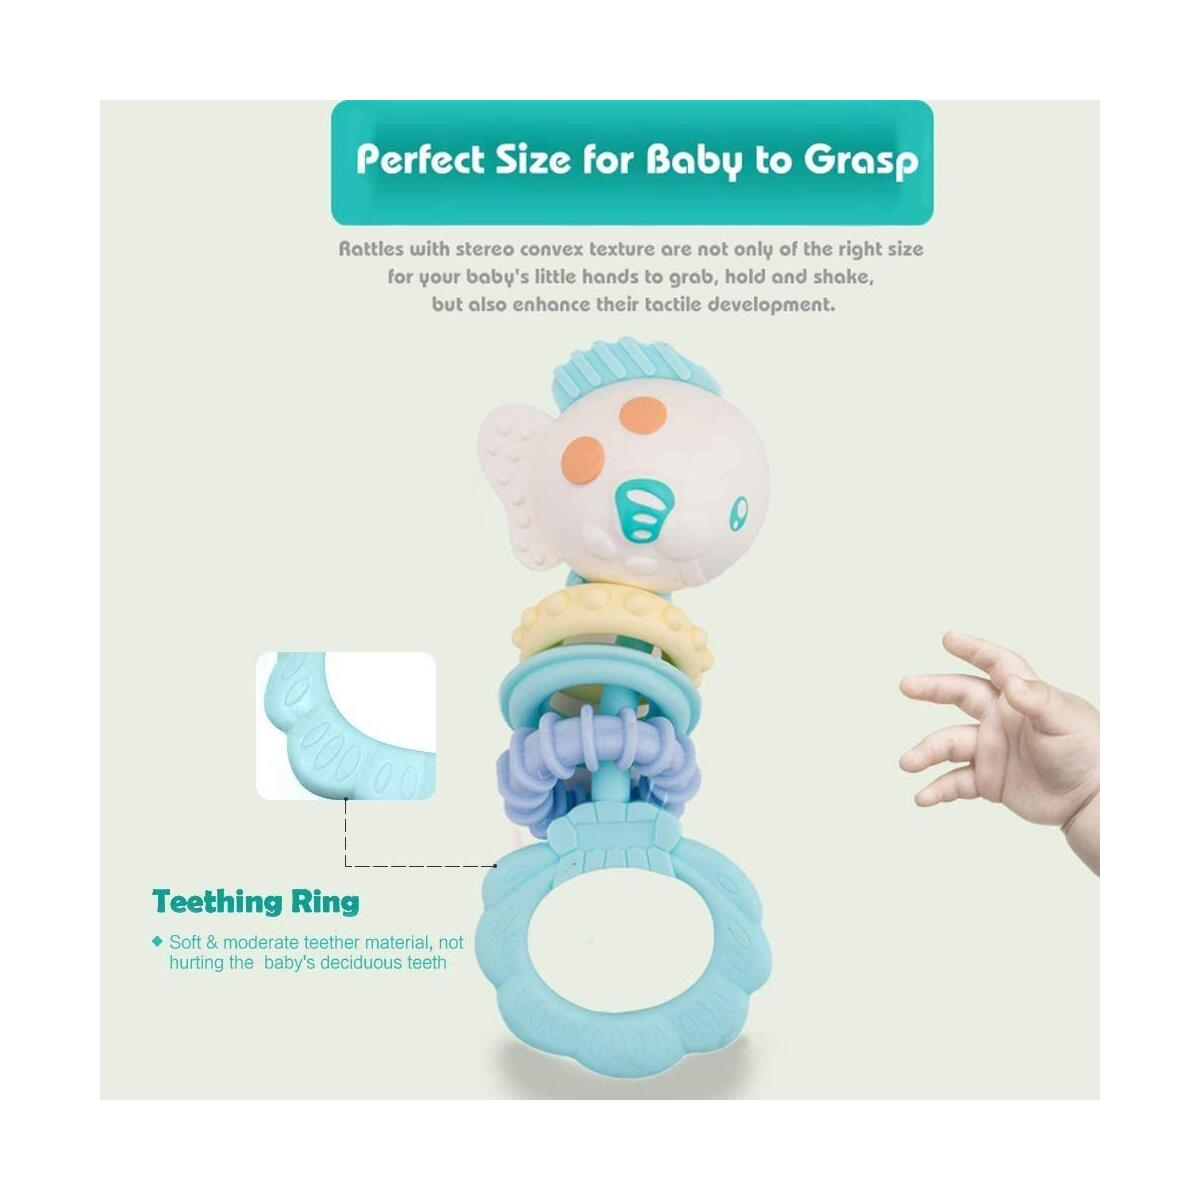 HANMUN Rattle Teether Baby Toys Baby 8 pcs Animal Shake and GRAP Baby Hand Development Rattle Toys with Storage Box for Newborn Infant 0-12 Months